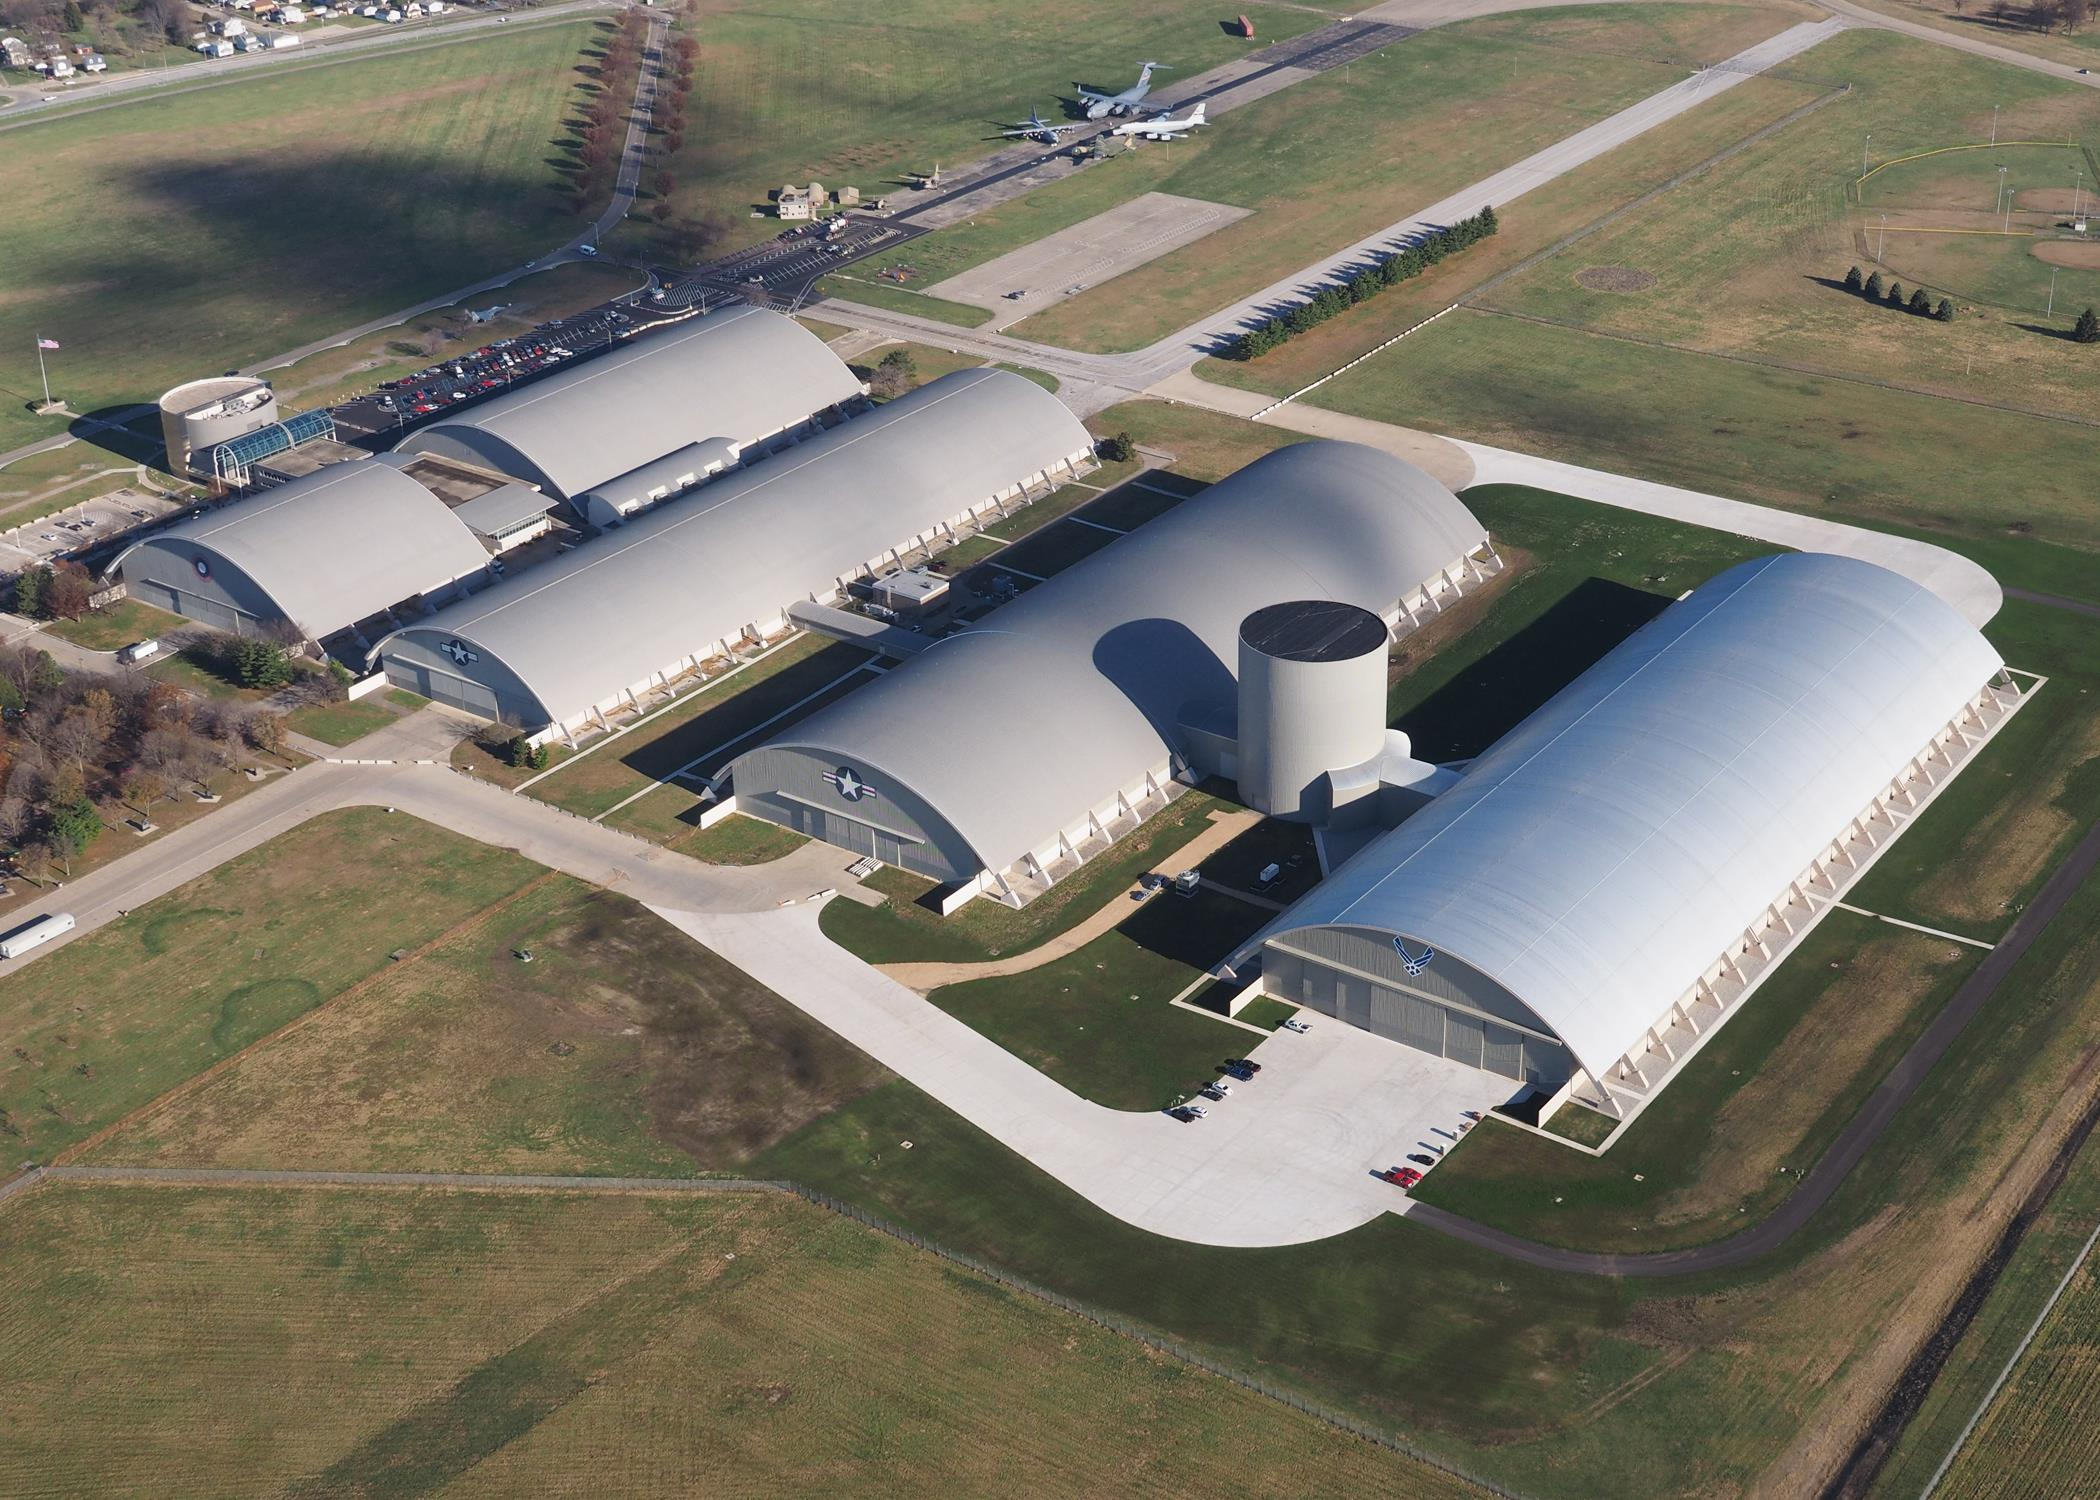 Aerial view of the National Museum of the U.S. Air Force during construction of the museum's fourth building on Nov. 13, 2015. The 224,000 square foot building, which is scheduled to open to the public in June of 2016, is being privately financed by the Air Force Museum Foundation, a non-profit organization chartered to assist in the development and expansion of the museum's facilities. (Photo courtesy of McKenrick Lee Photography)